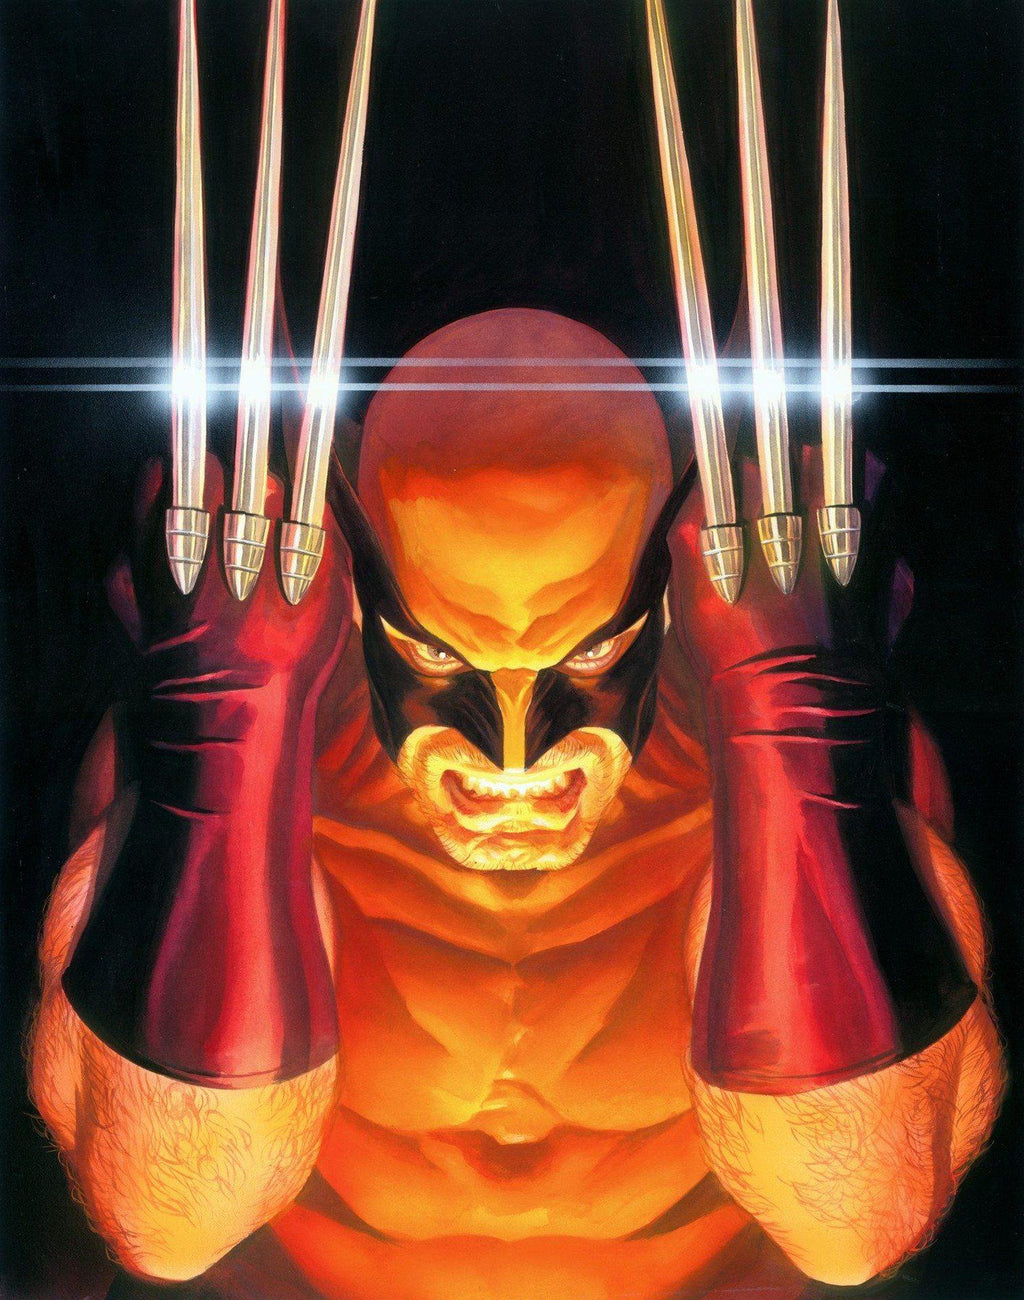 VISIONS: WOLVERINE BY ALEX ROSS Giclée On Canvas MARVEL FINE ART